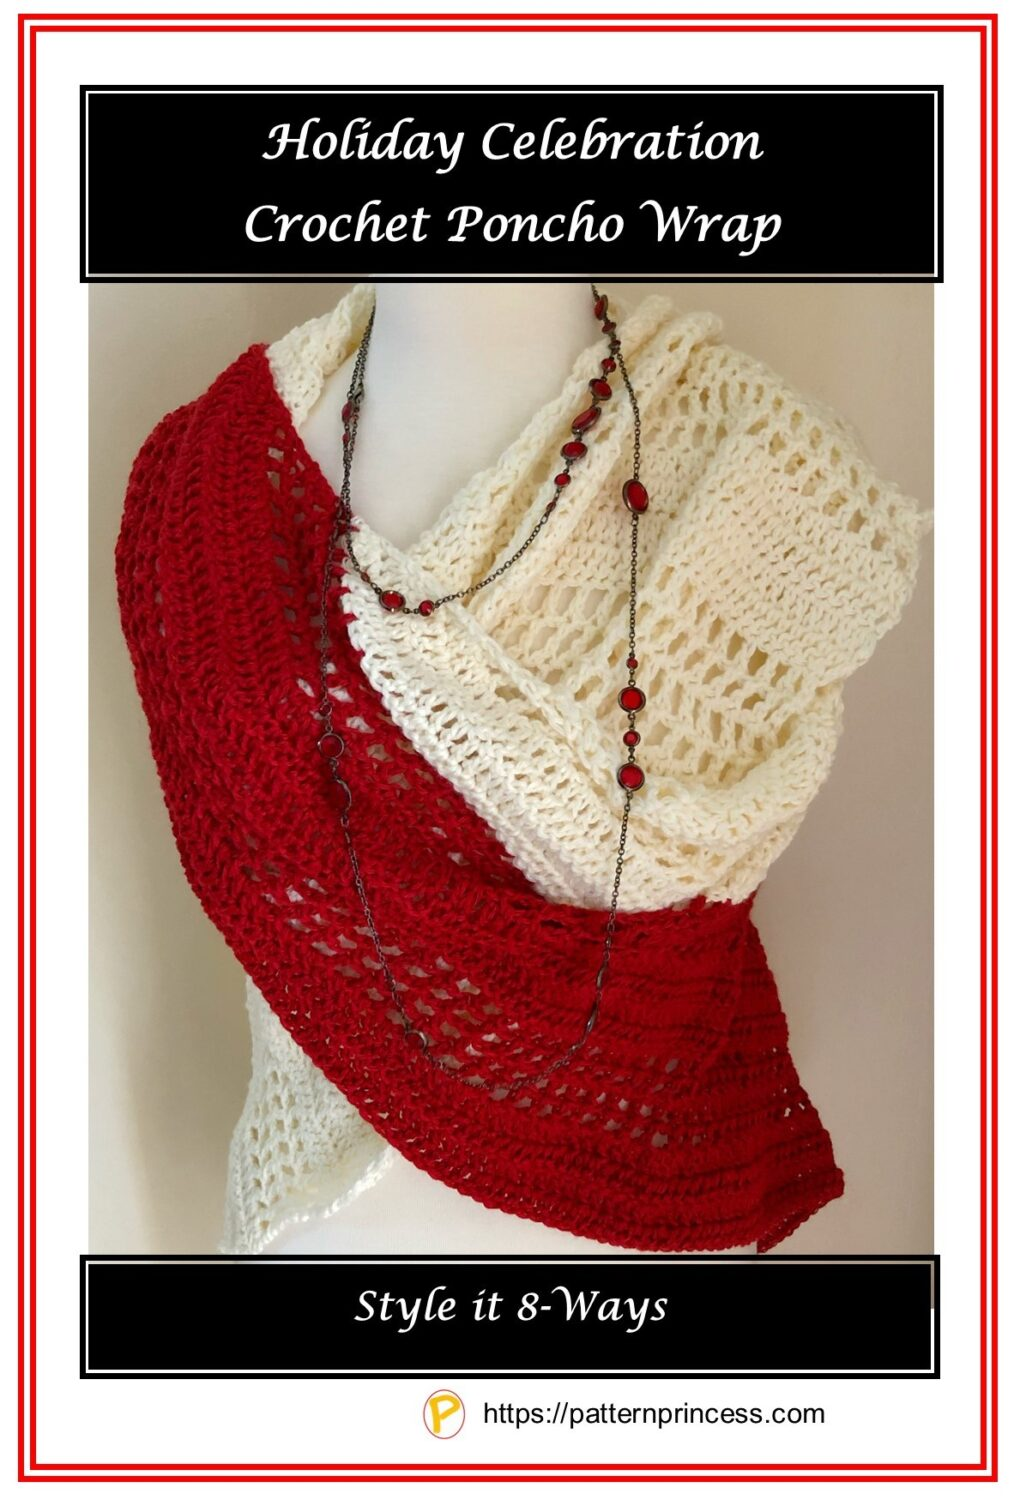 Holiday Celebration Crochet Poncho Wrap